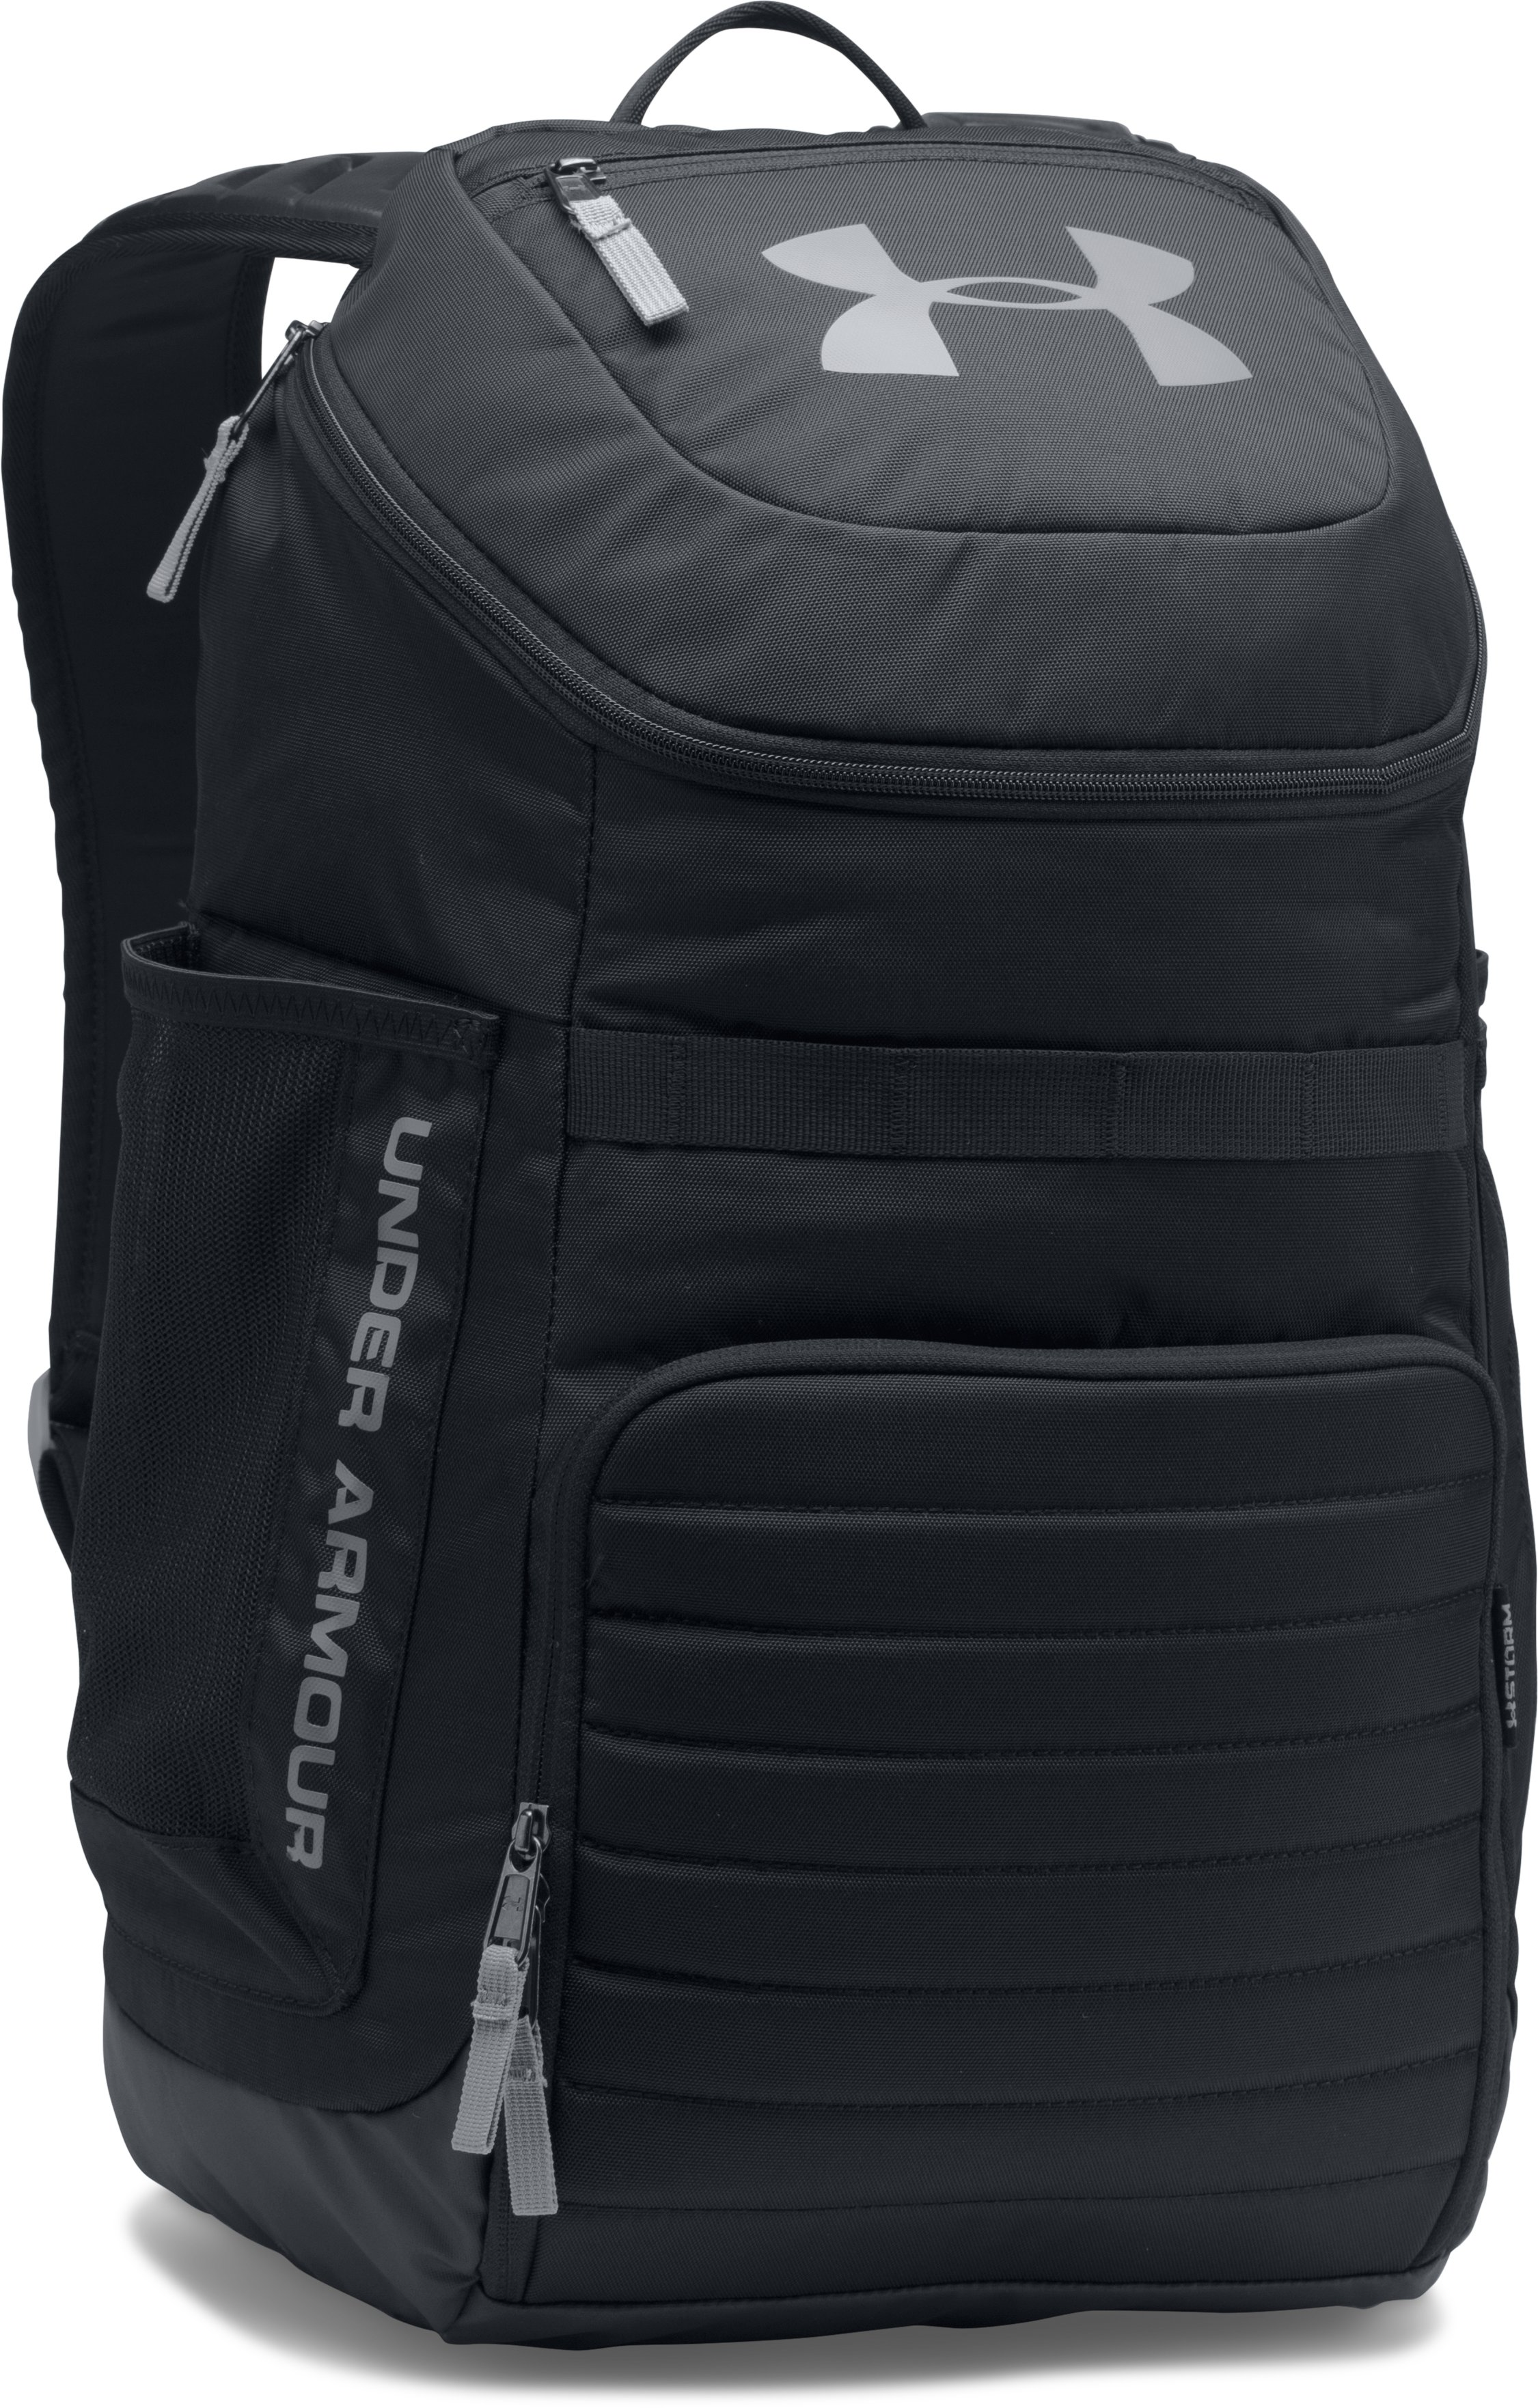 UA Undeniable 3.0 Backpack, Black